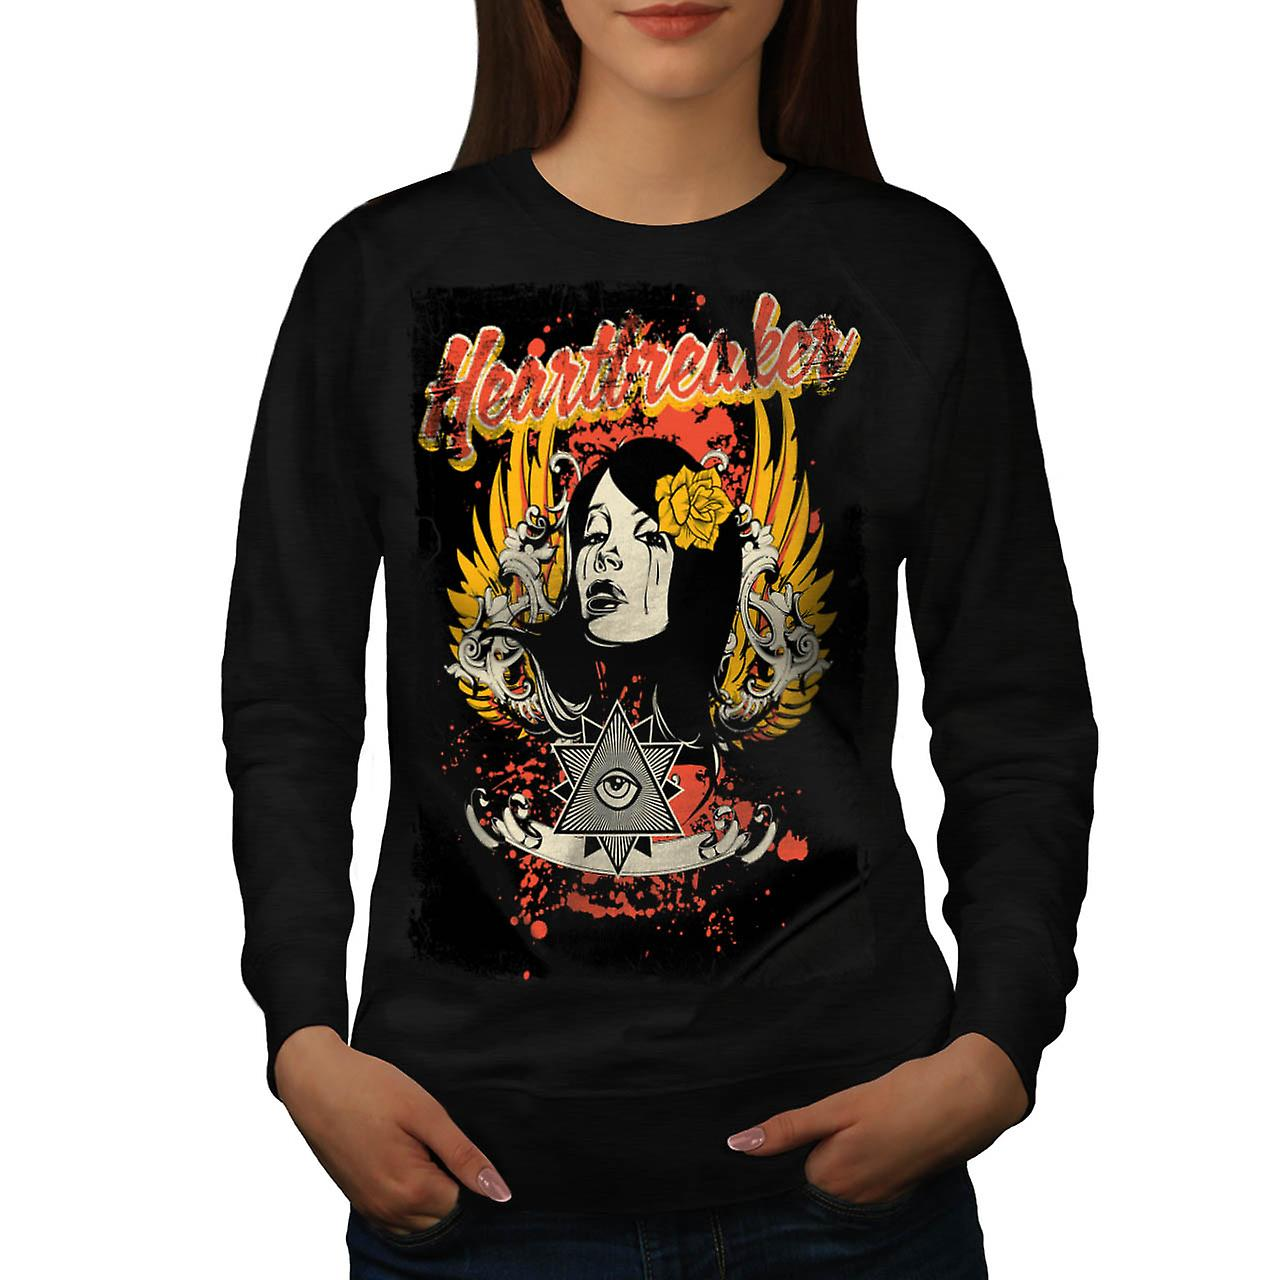 Heart Breaker Society Illuminati Women Black Sweatshirt | Wellcoda